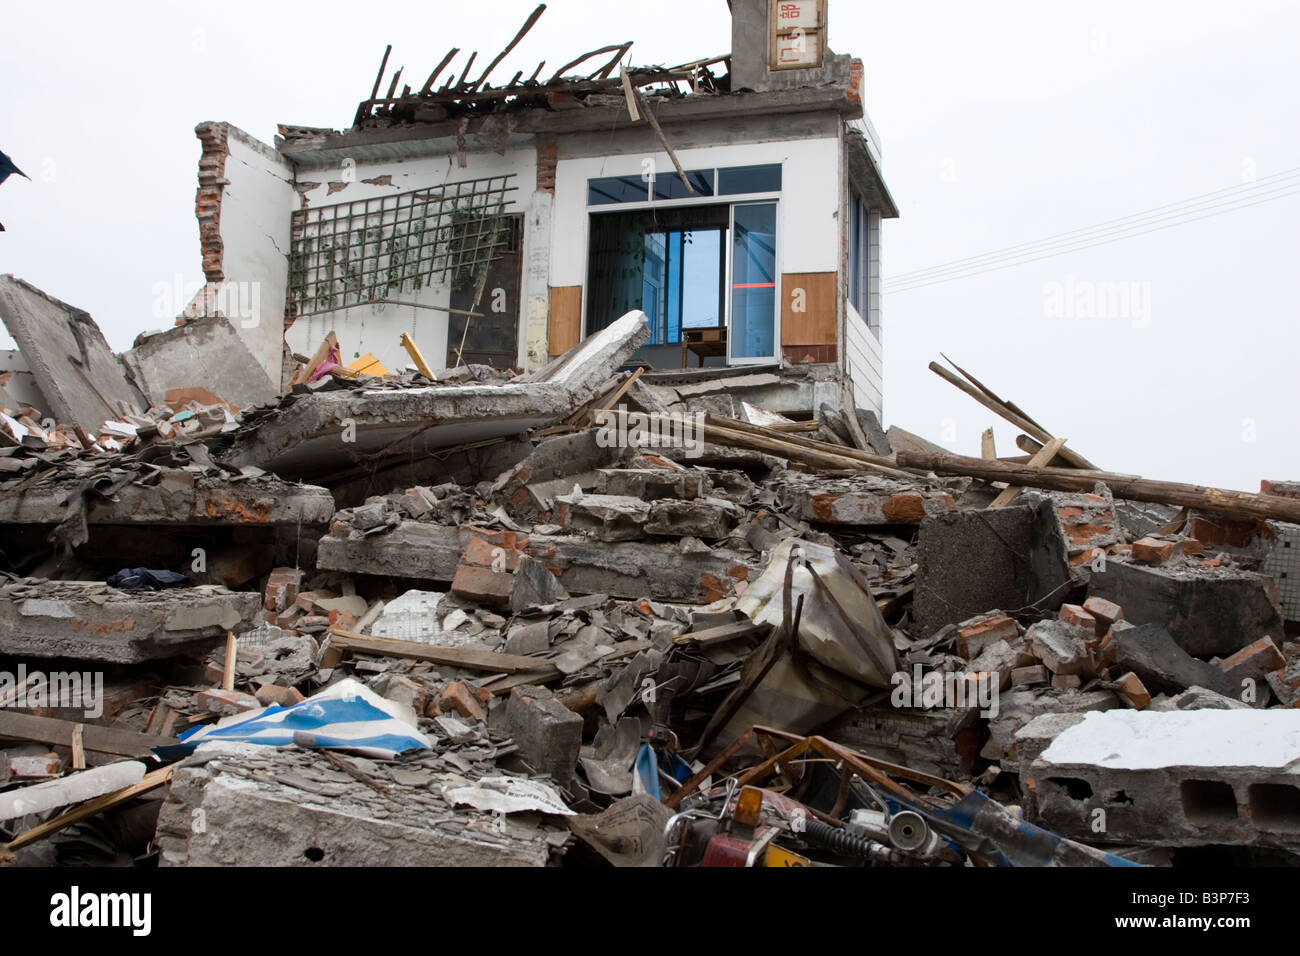 Buildings in a town in Mianzhu perfecture gutted by the massive earthquake that hit Sichuan on May 12 2008 - Stock Image